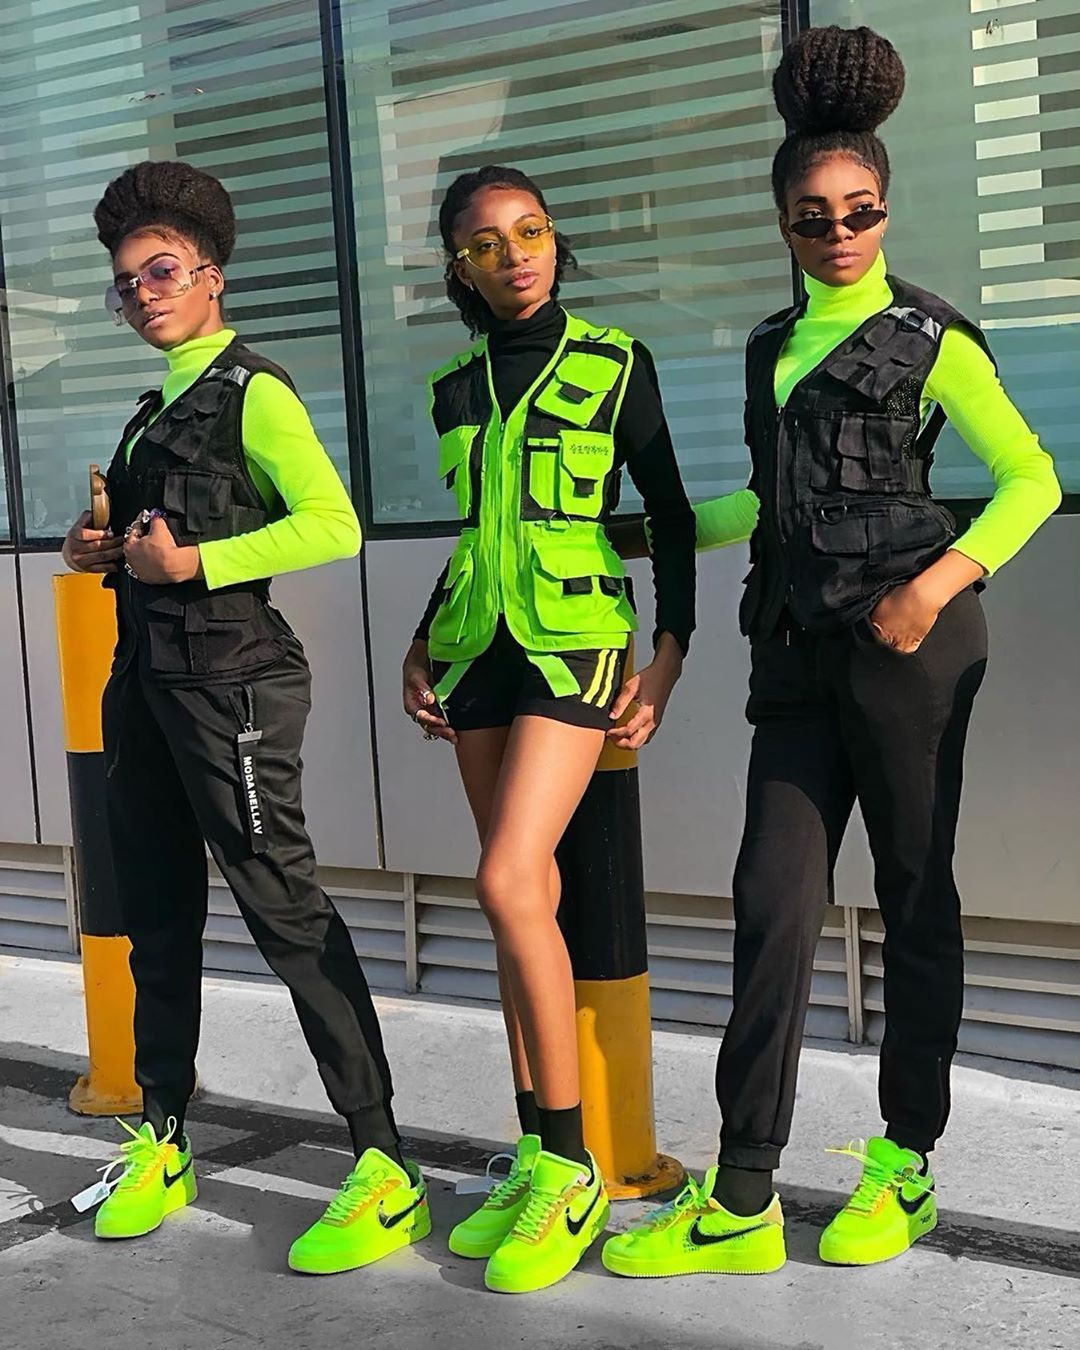 Behind The Scenes By Cvshed In 2020 Streetwear Fashion Women Neon Outfits Neon Green Outfits